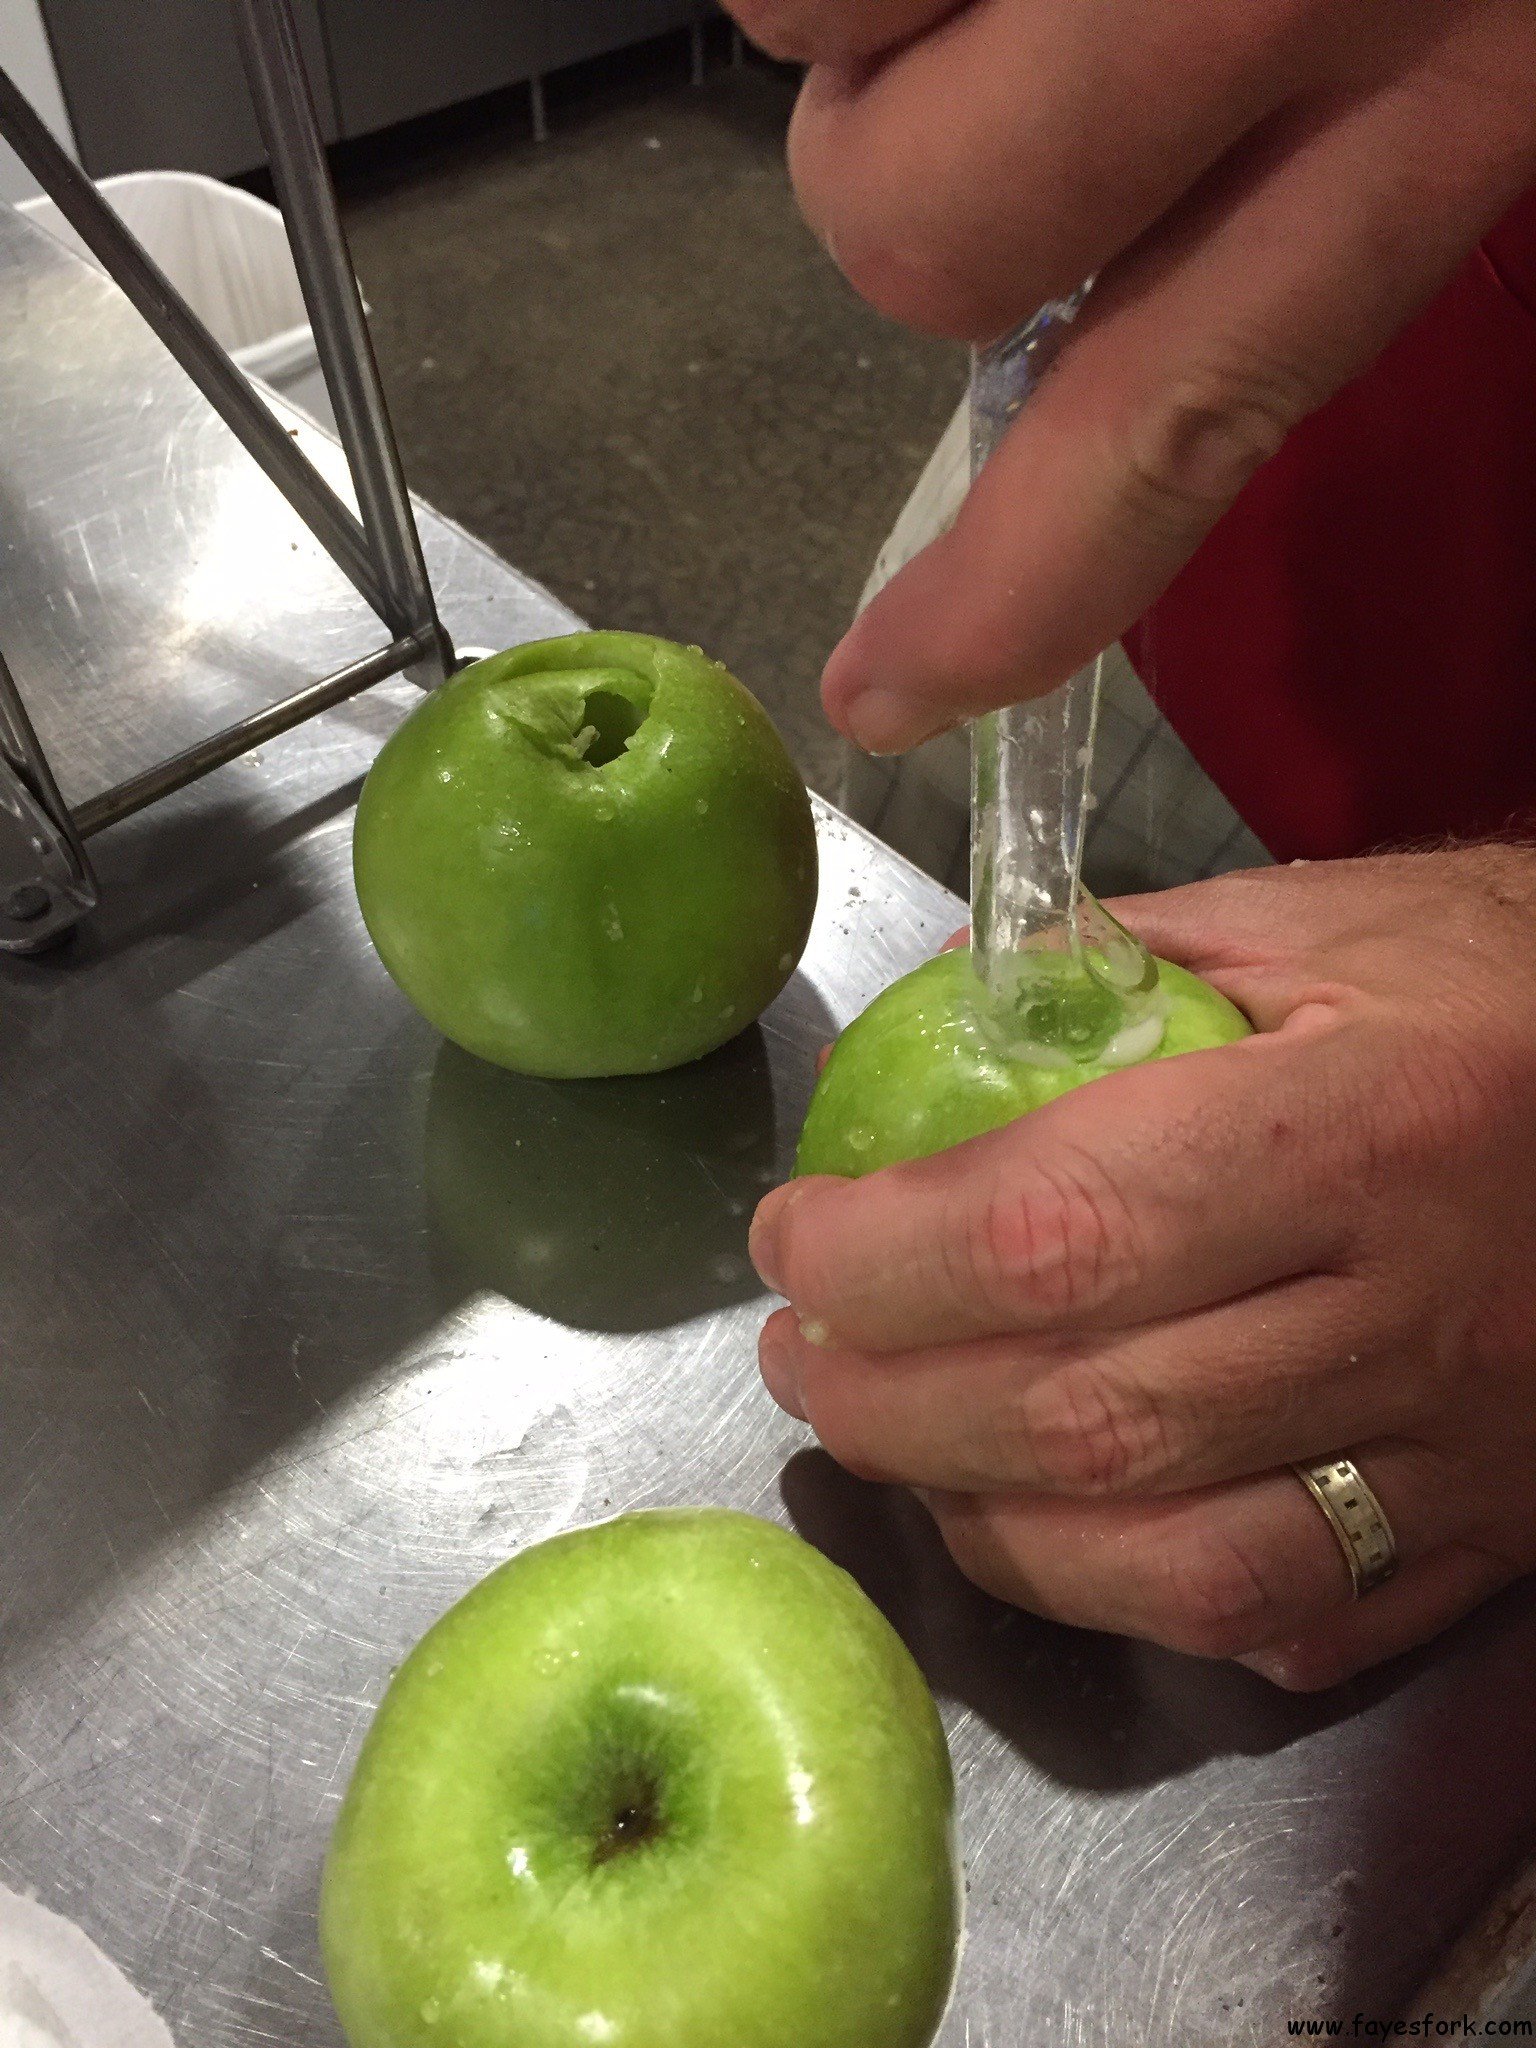 CORING THE GRANNY SMITH APPLES